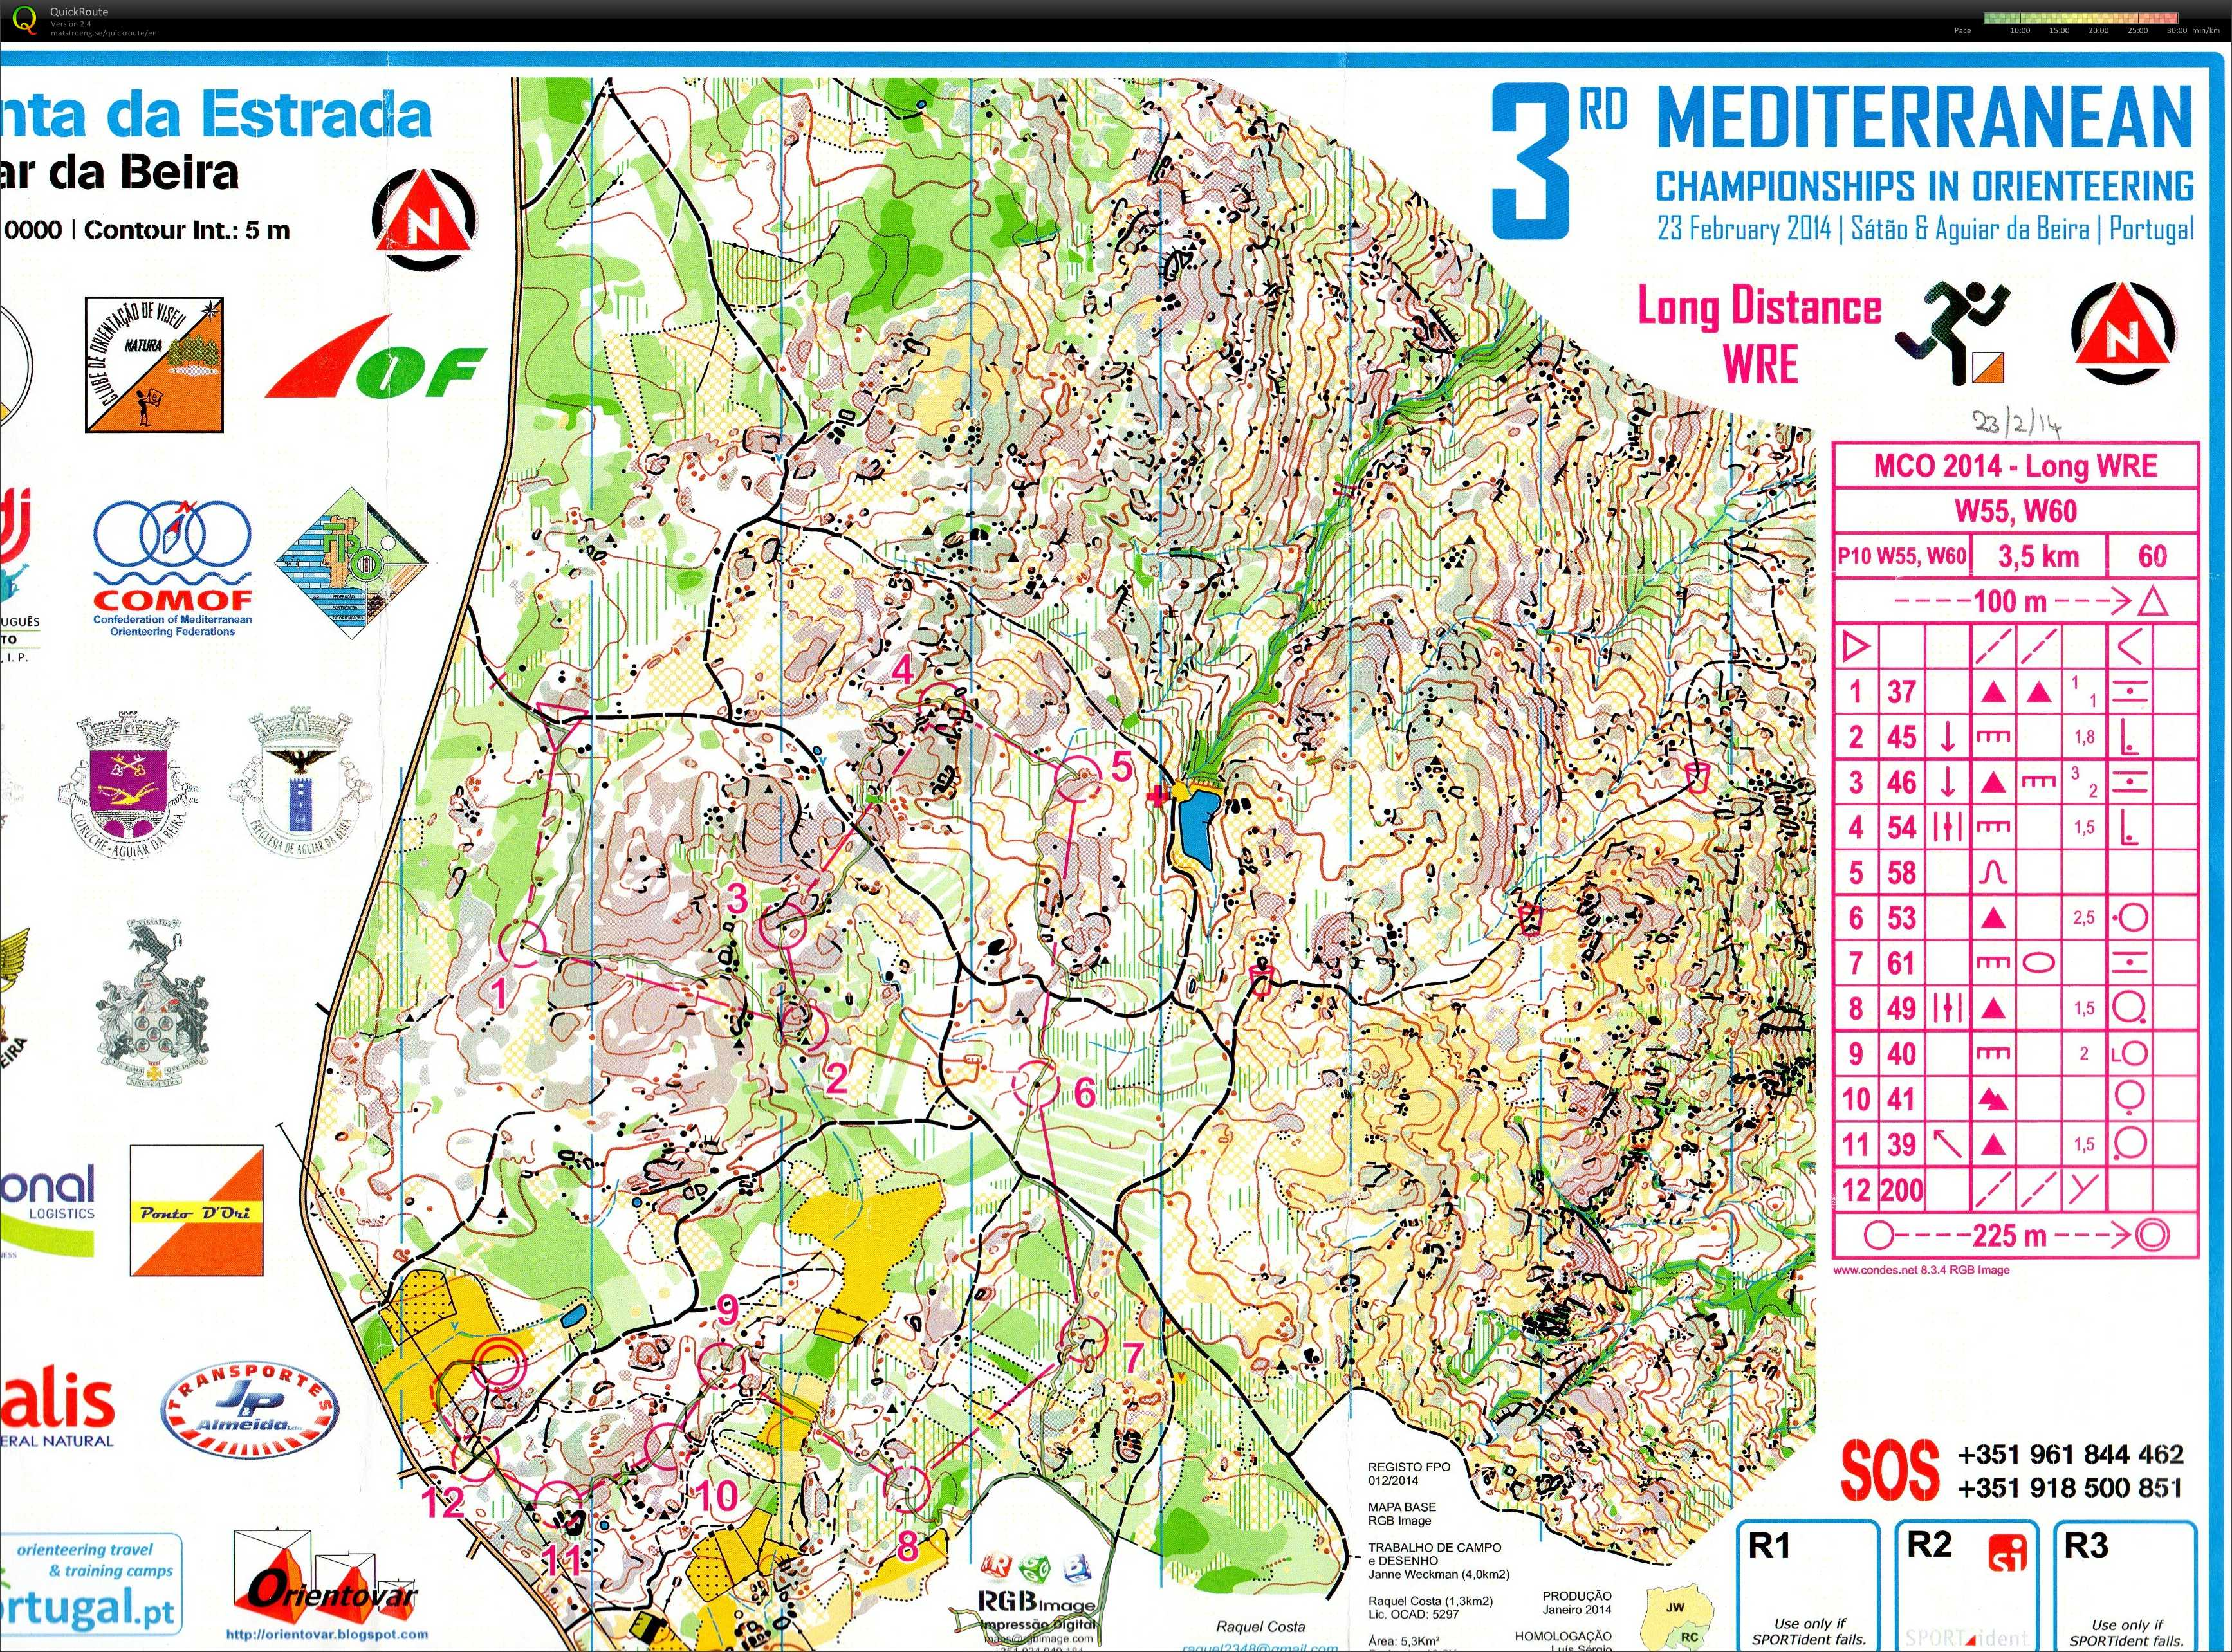 3rd Mediteranean Championships in Orienteering - Long Distance (23-02-2014)